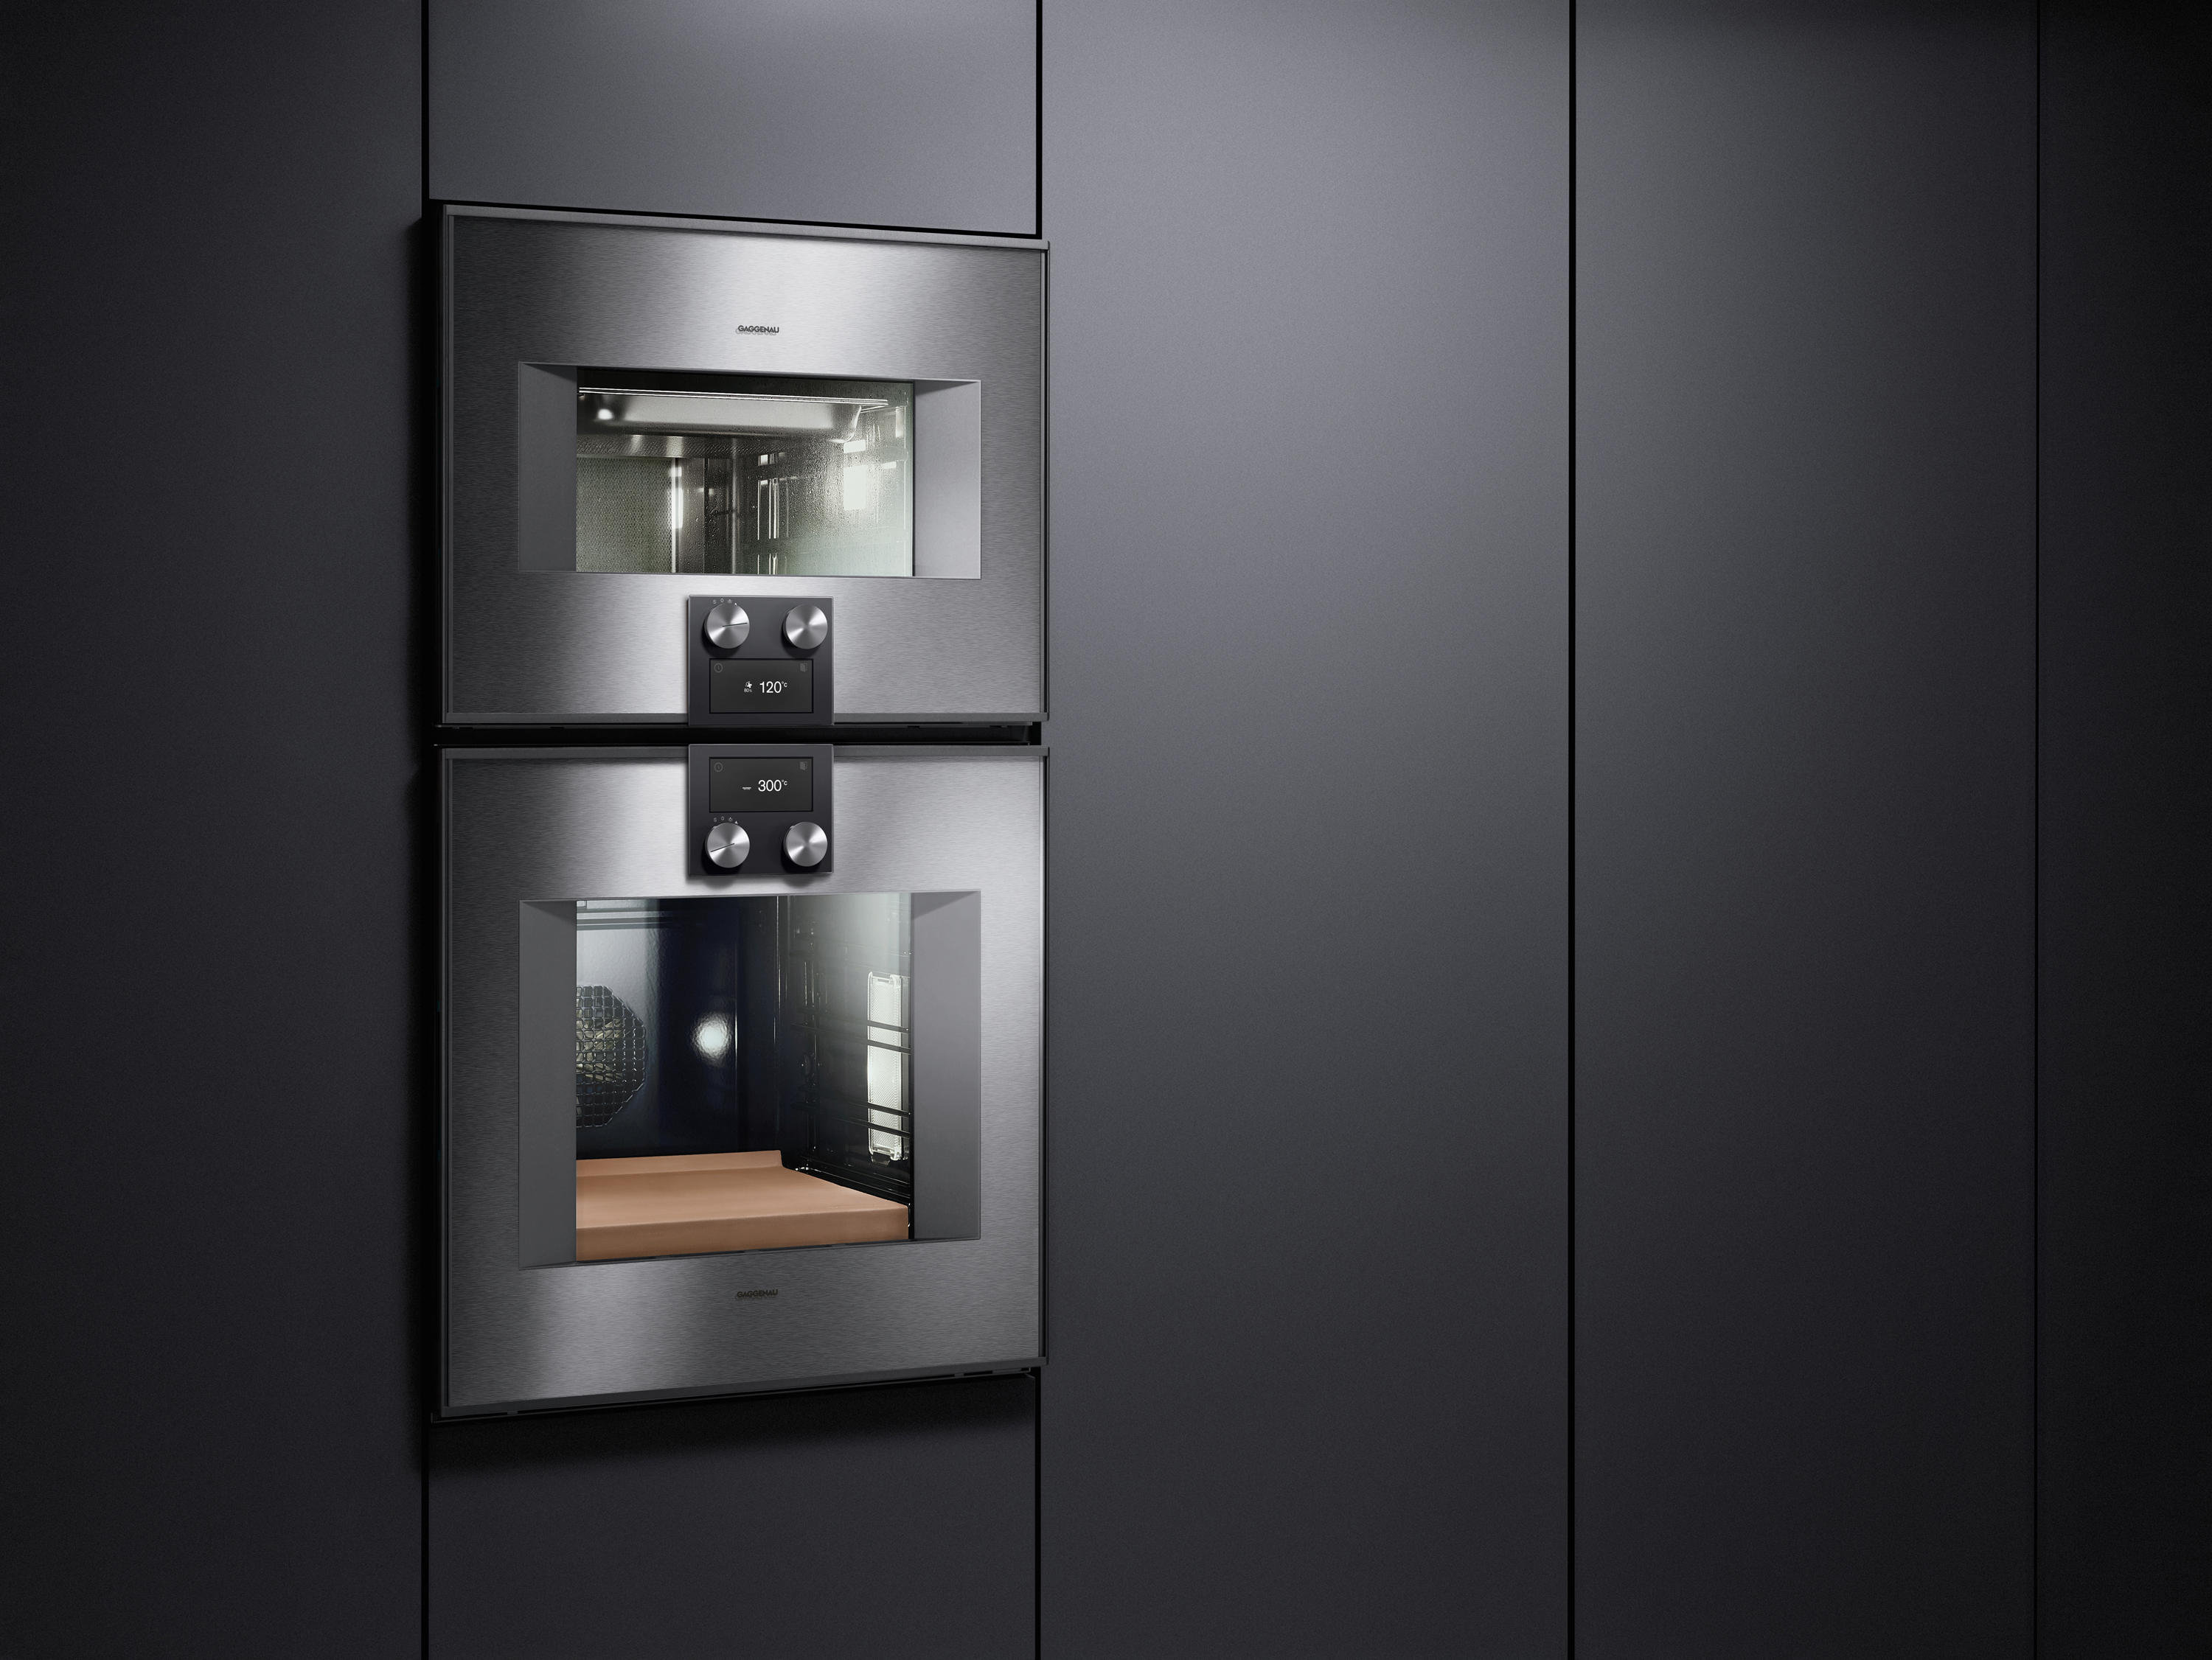 doppel backofen serie 400 bx 480 bx 481 back fen von gaggenau architonic. Black Bedroom Furniture Sets. Home Design Ideas